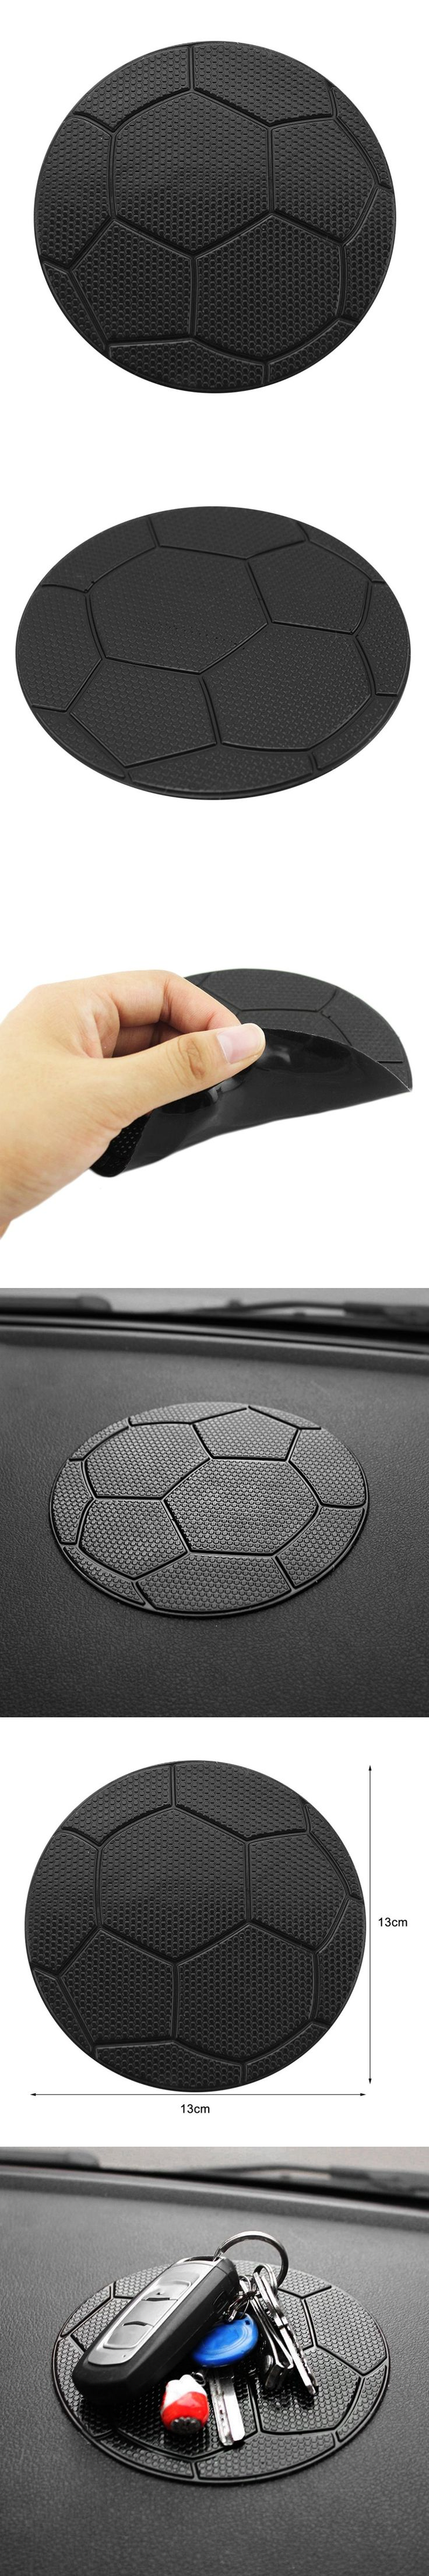 Universal Silicone Football Pattern Car Auto Styling Anti Slip Sticky Pad  Cushion for Cell Phone Coins